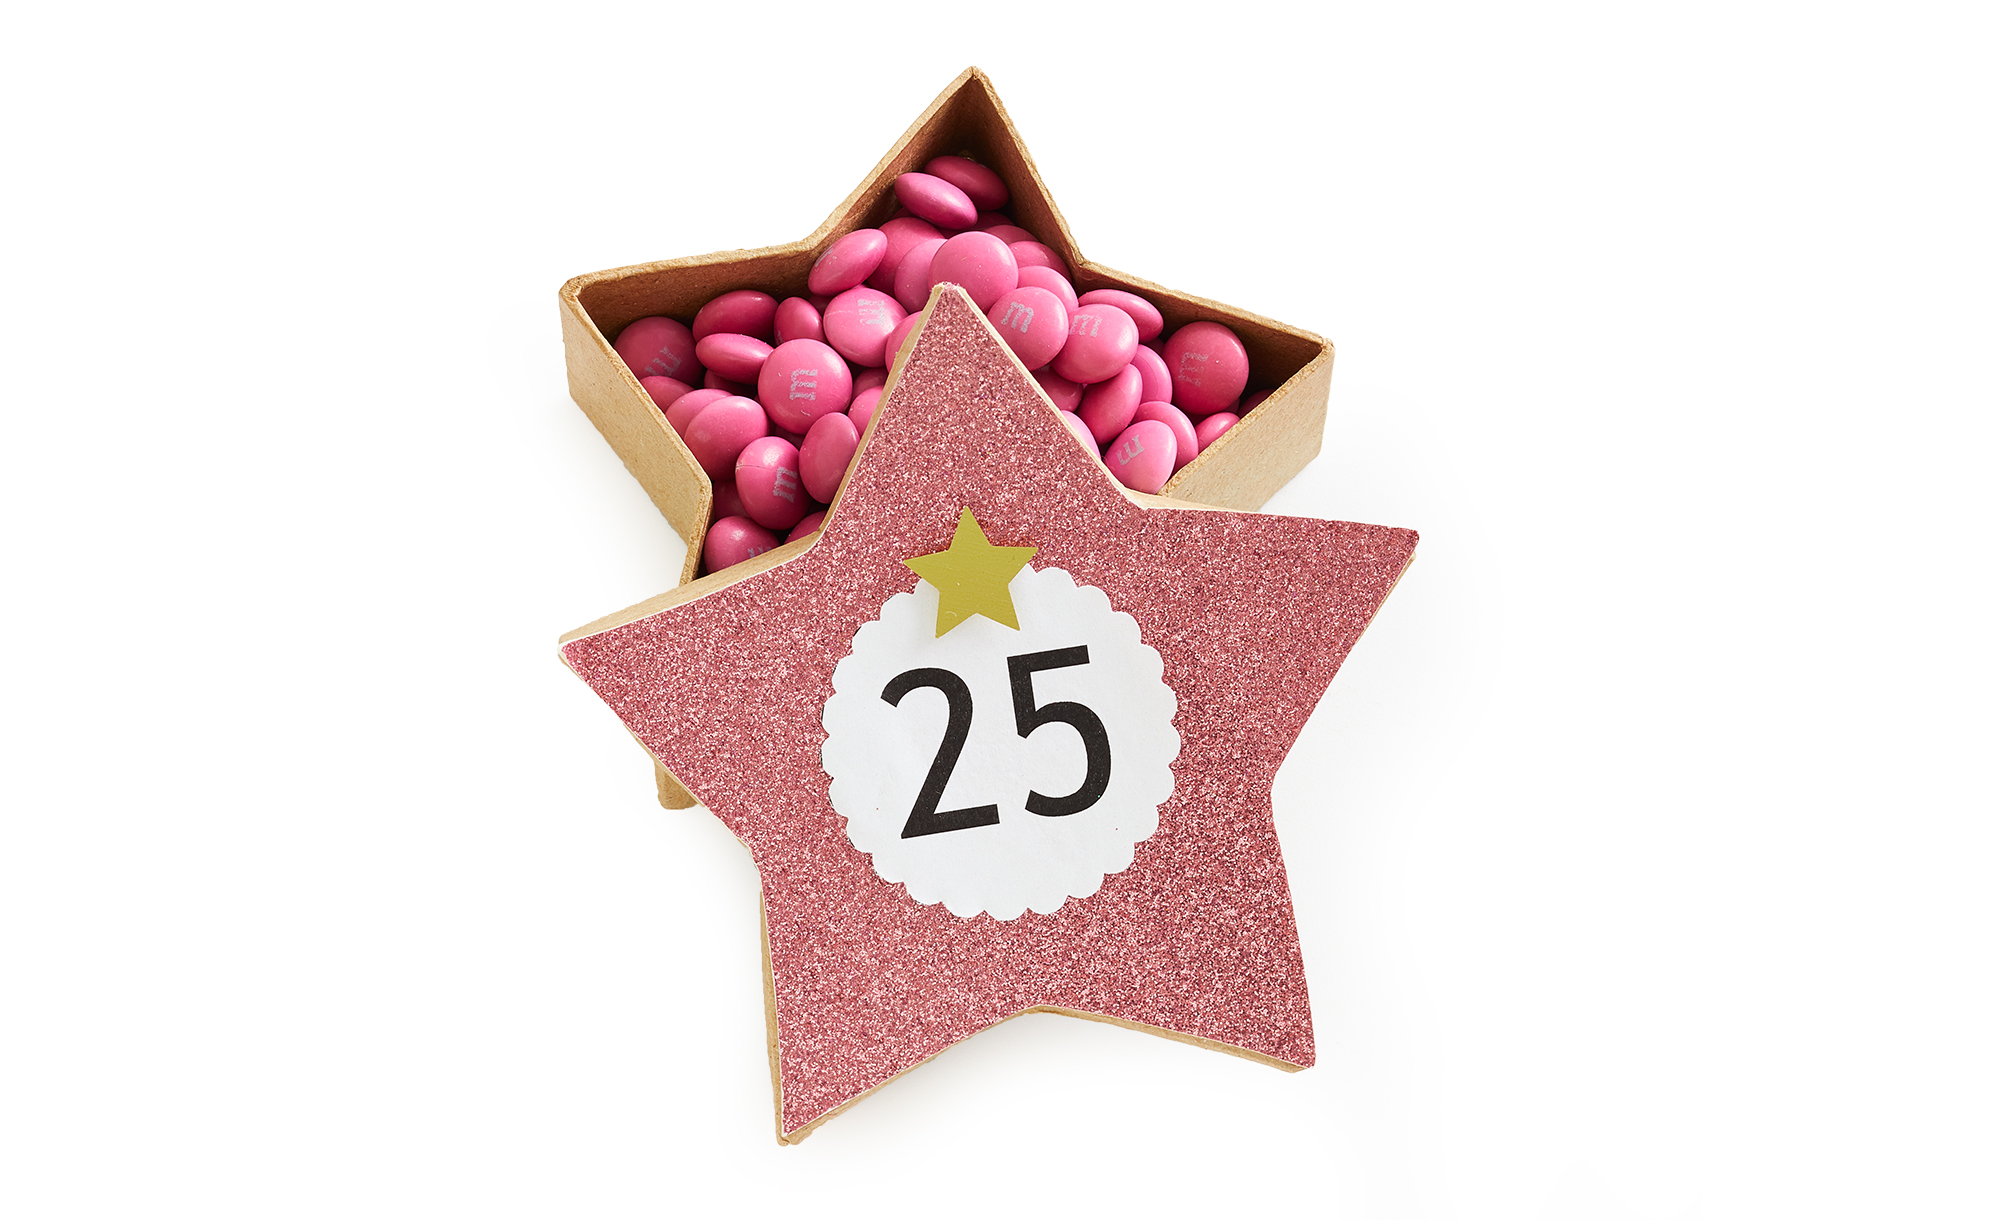 glittery star box with pink m&ms day 25 of hanging advent calendar